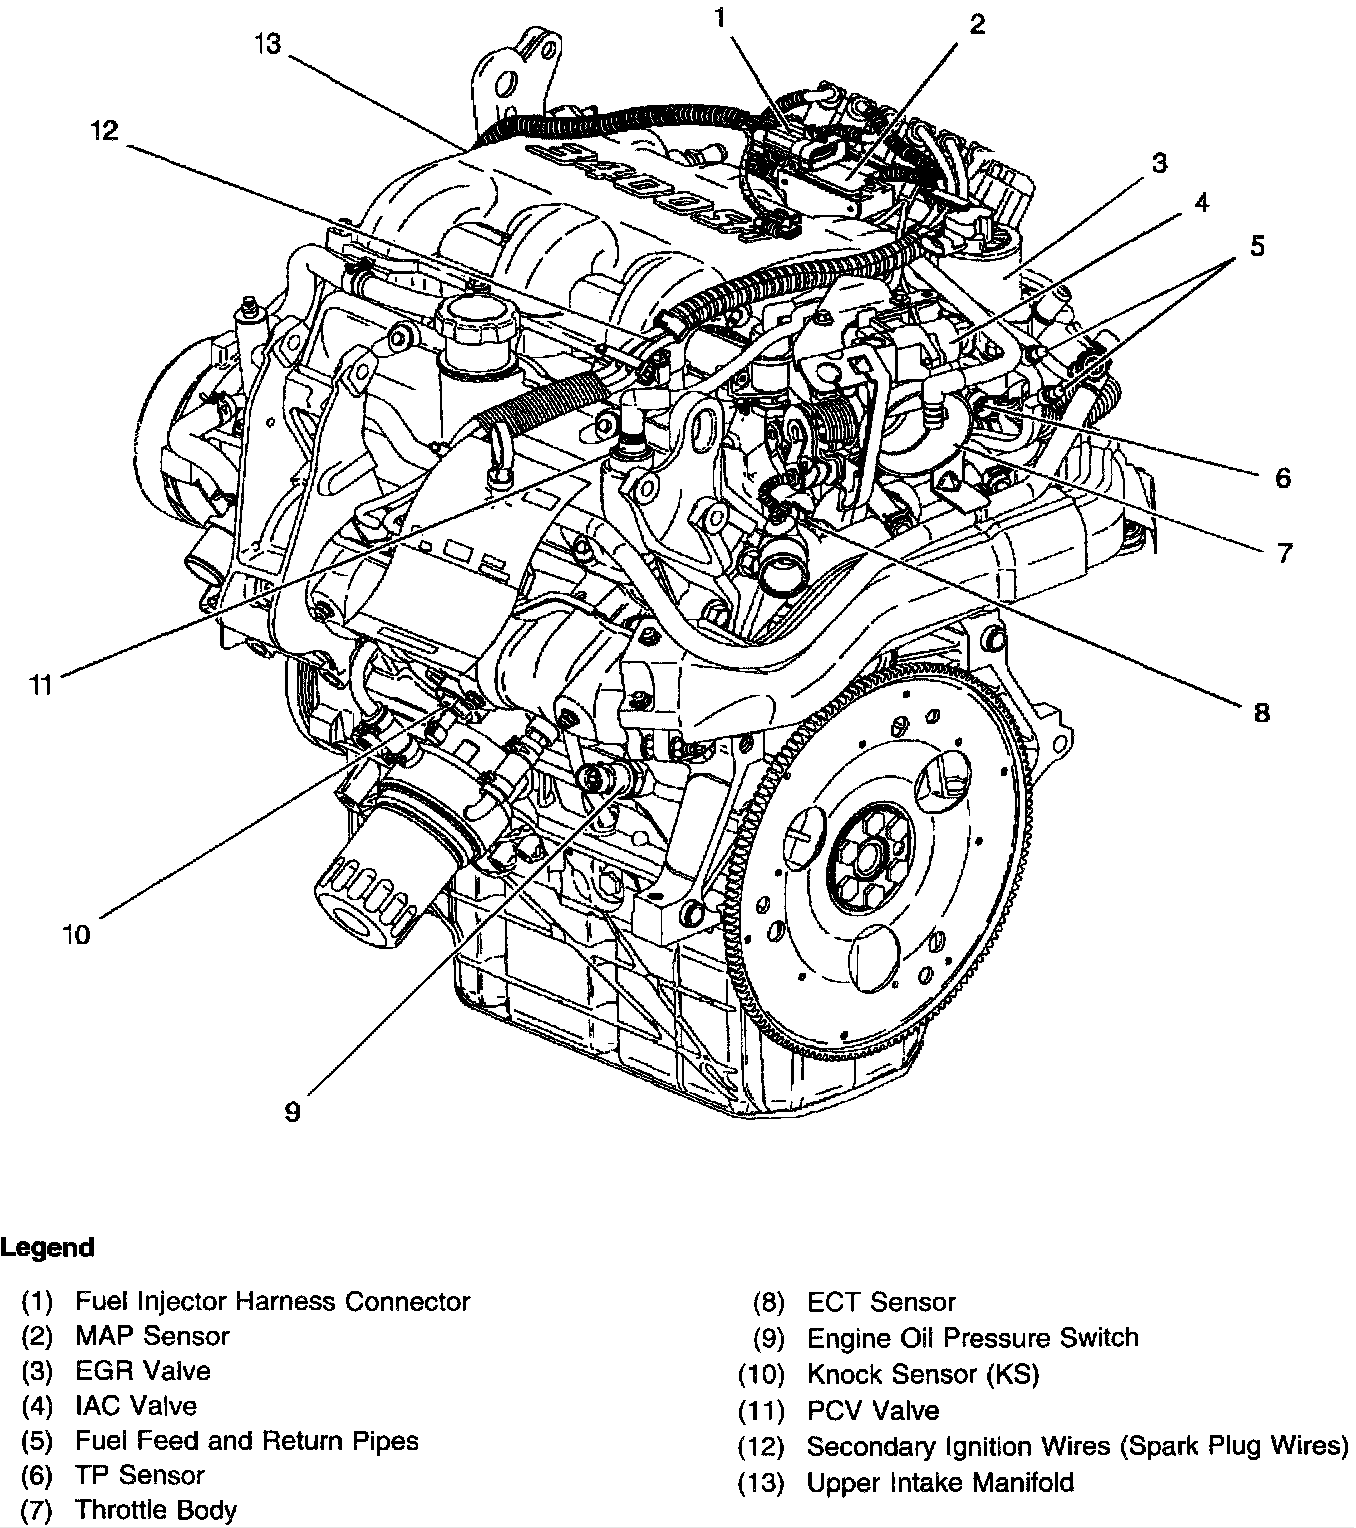 ☑ 1986 V6 Engine Diagram HD Quality ☑ mass-diagram.twirlinglucca.itTwirlinglucca.it